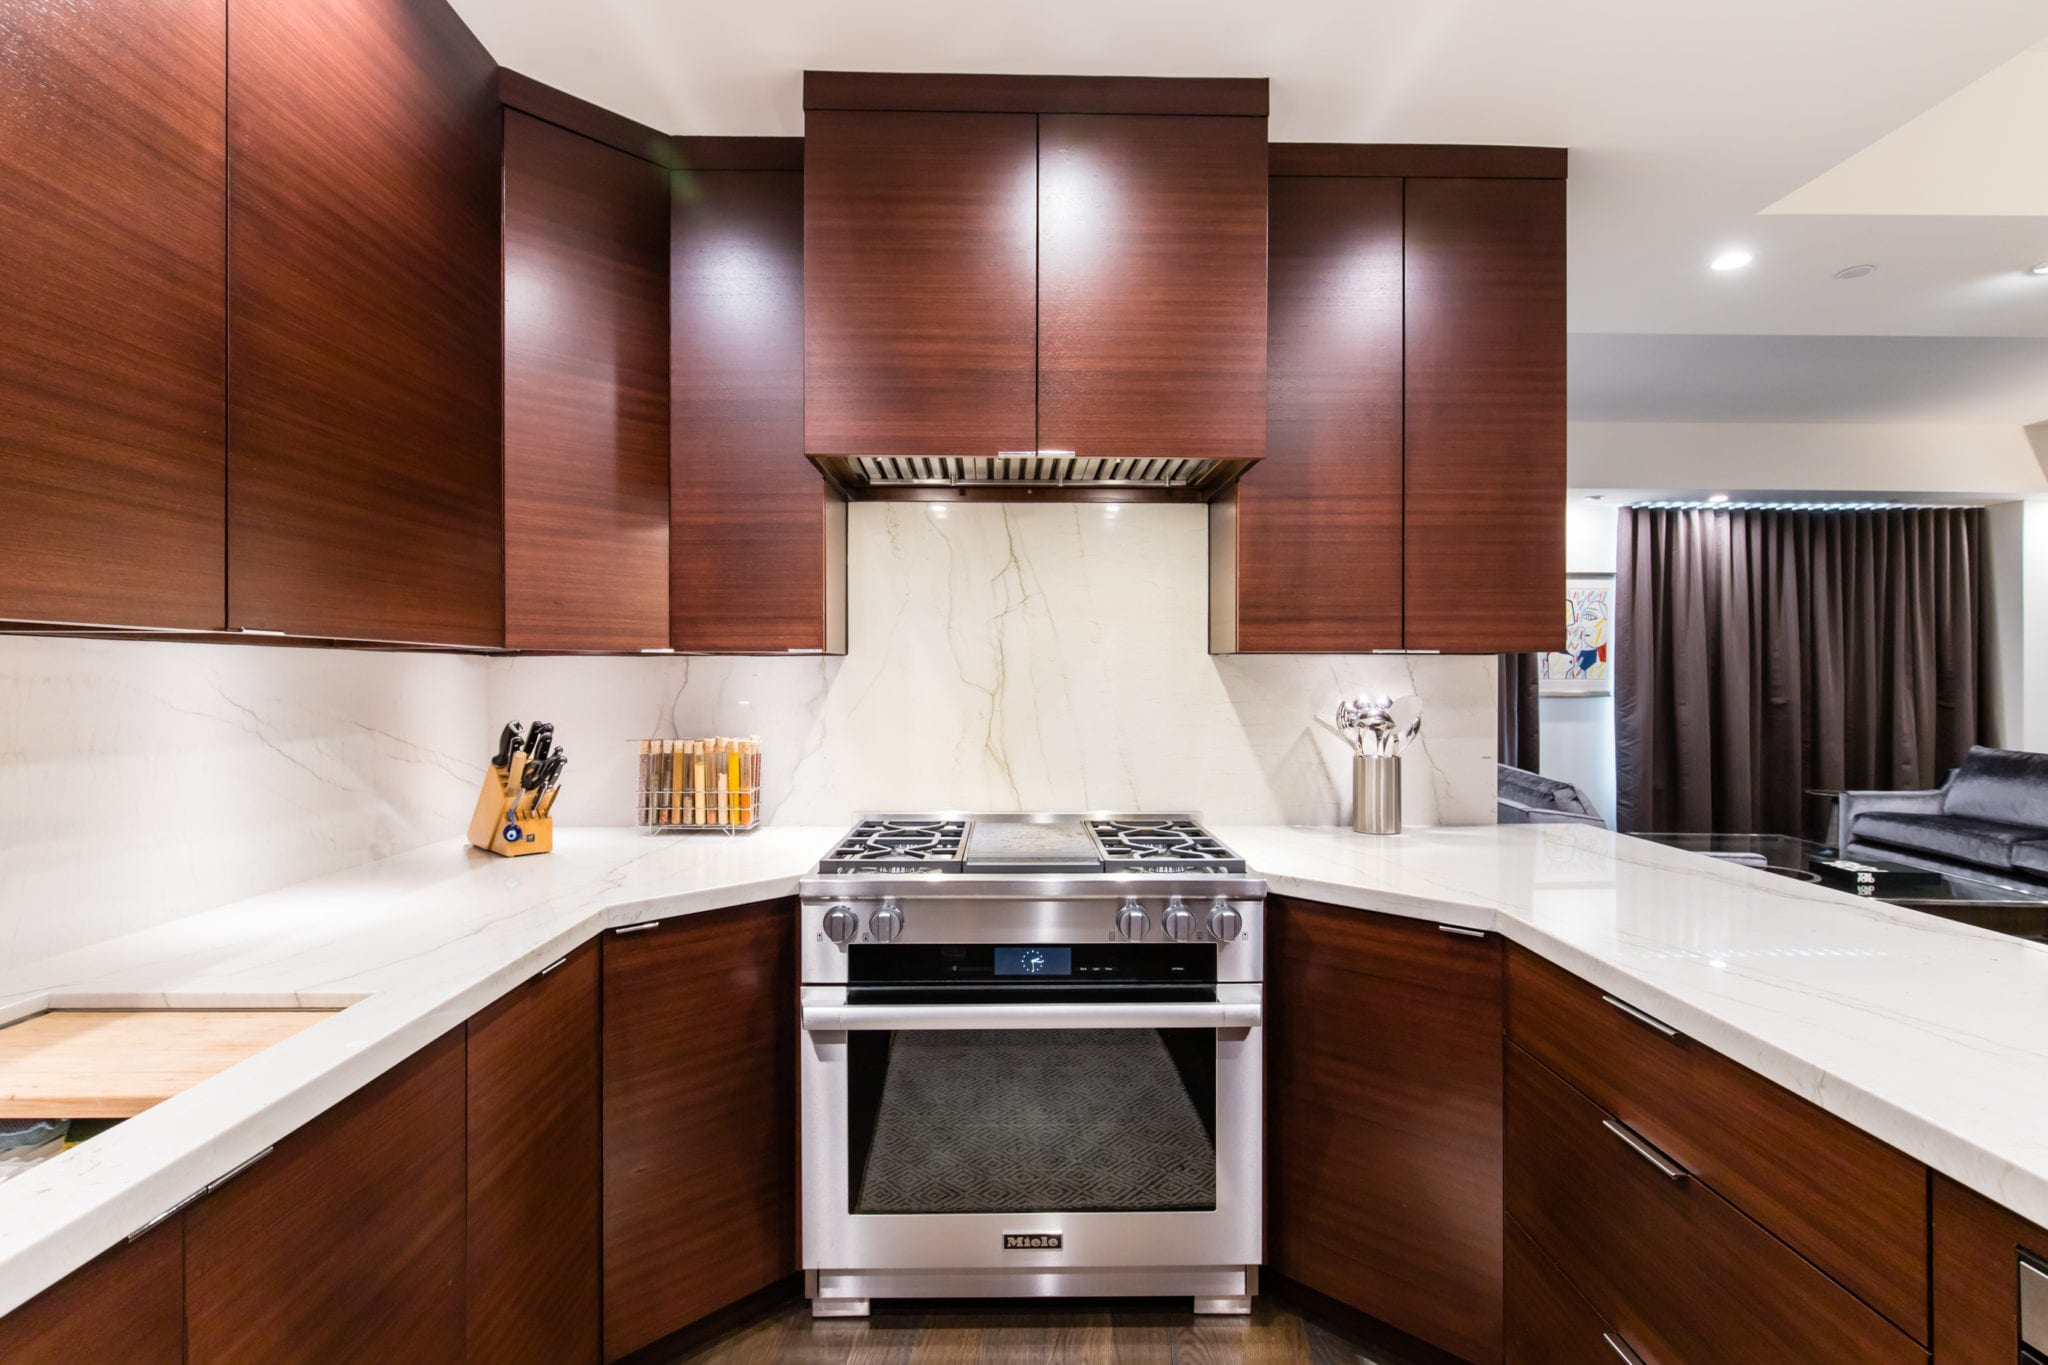 Upper Level Condo Kitchen After Remodeling